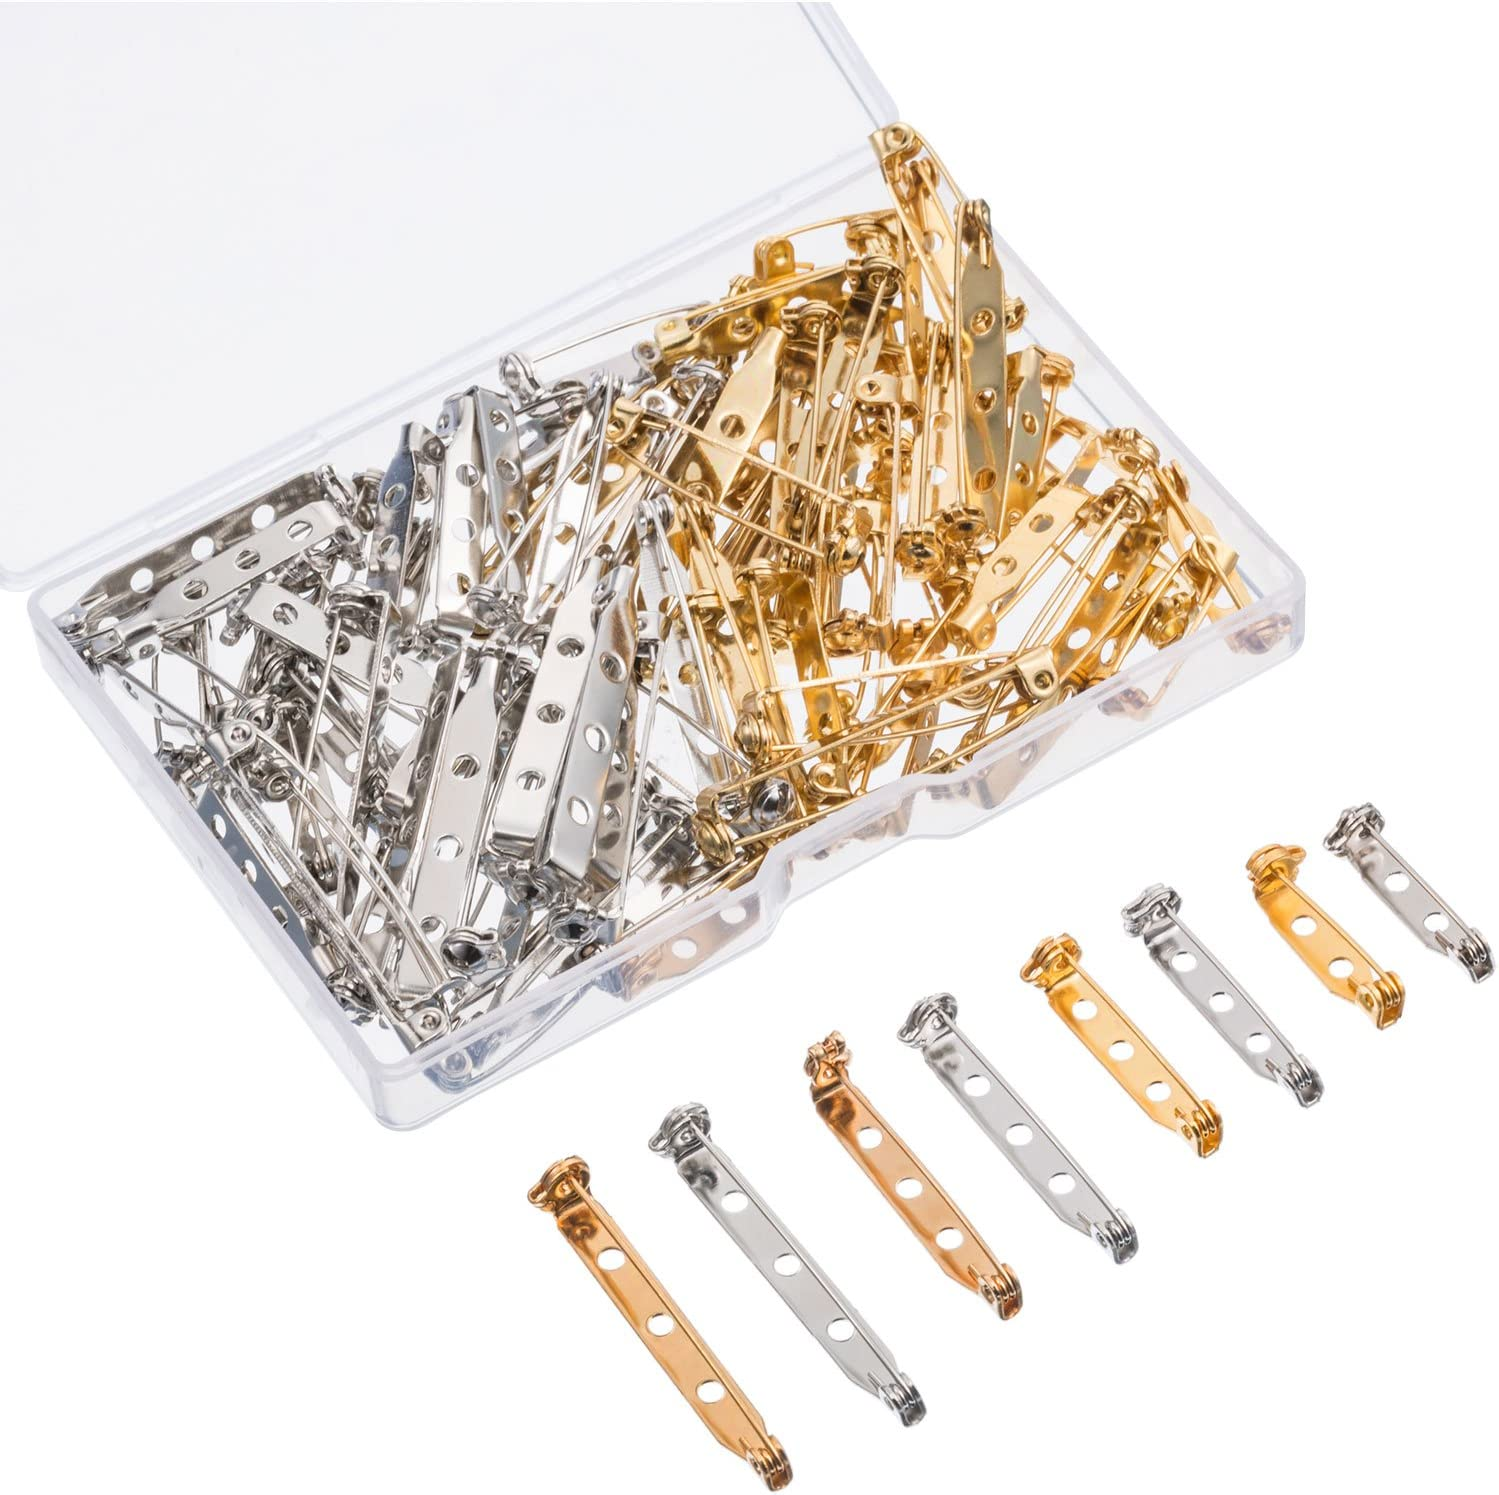 Shappy 100 Pieces Bar Pins Brooch Pin Backs Safety Clasp with Plastic Box 4 Sizes 20 mm 32 mm and 38 mm Gold and Silver 25 mm